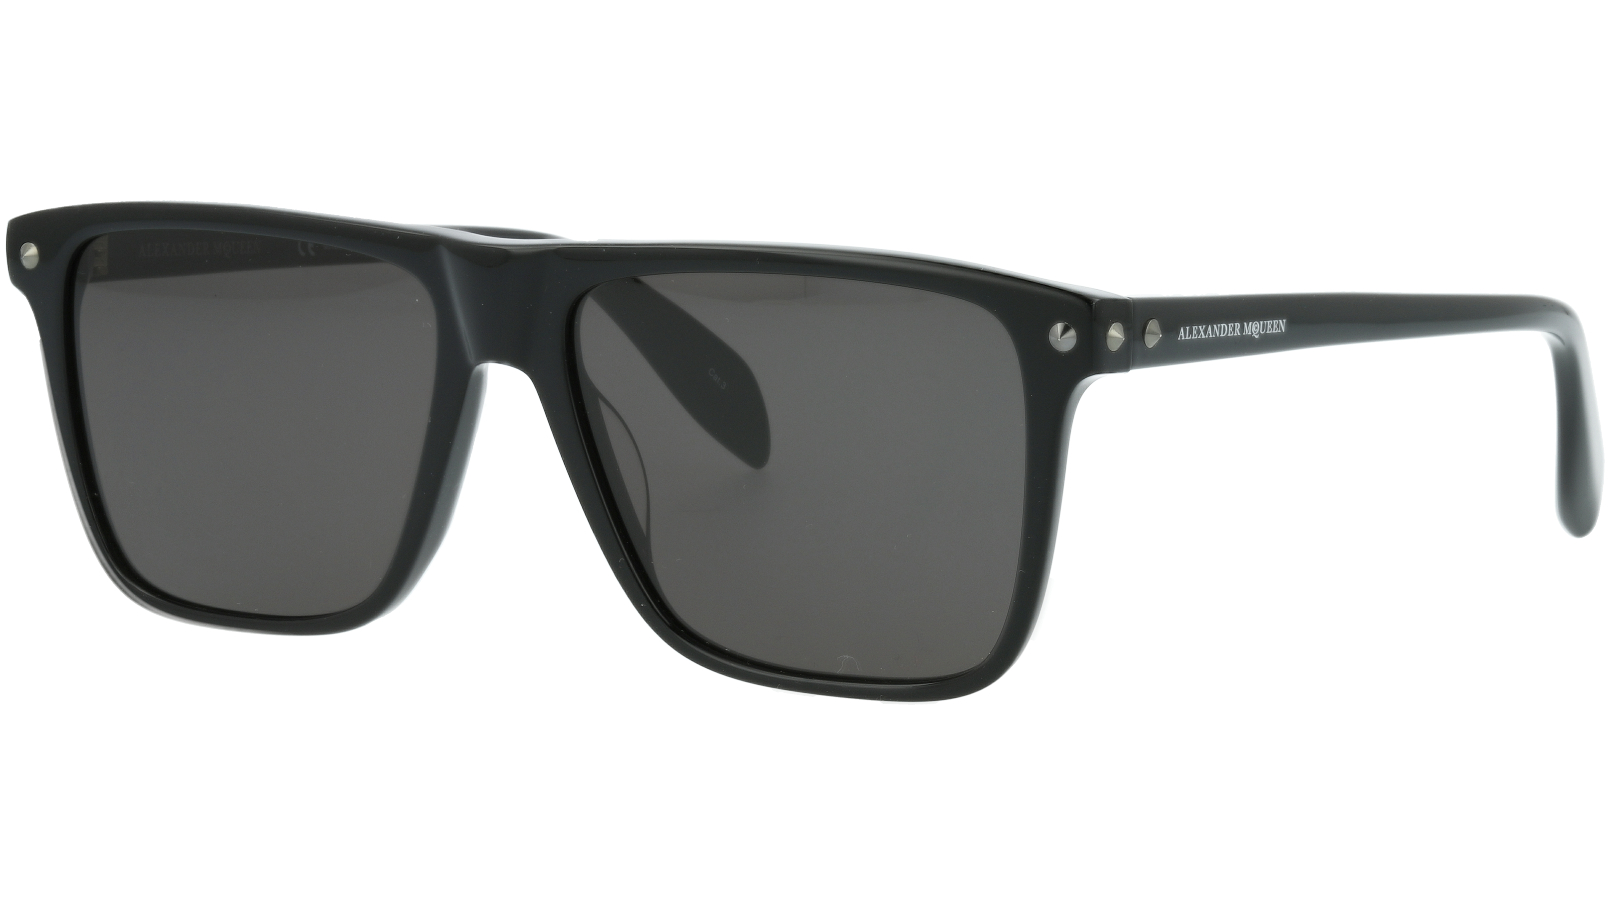 ALEXANDER MCQUEEN AM0129S 001 56 BLACK Sunglasses